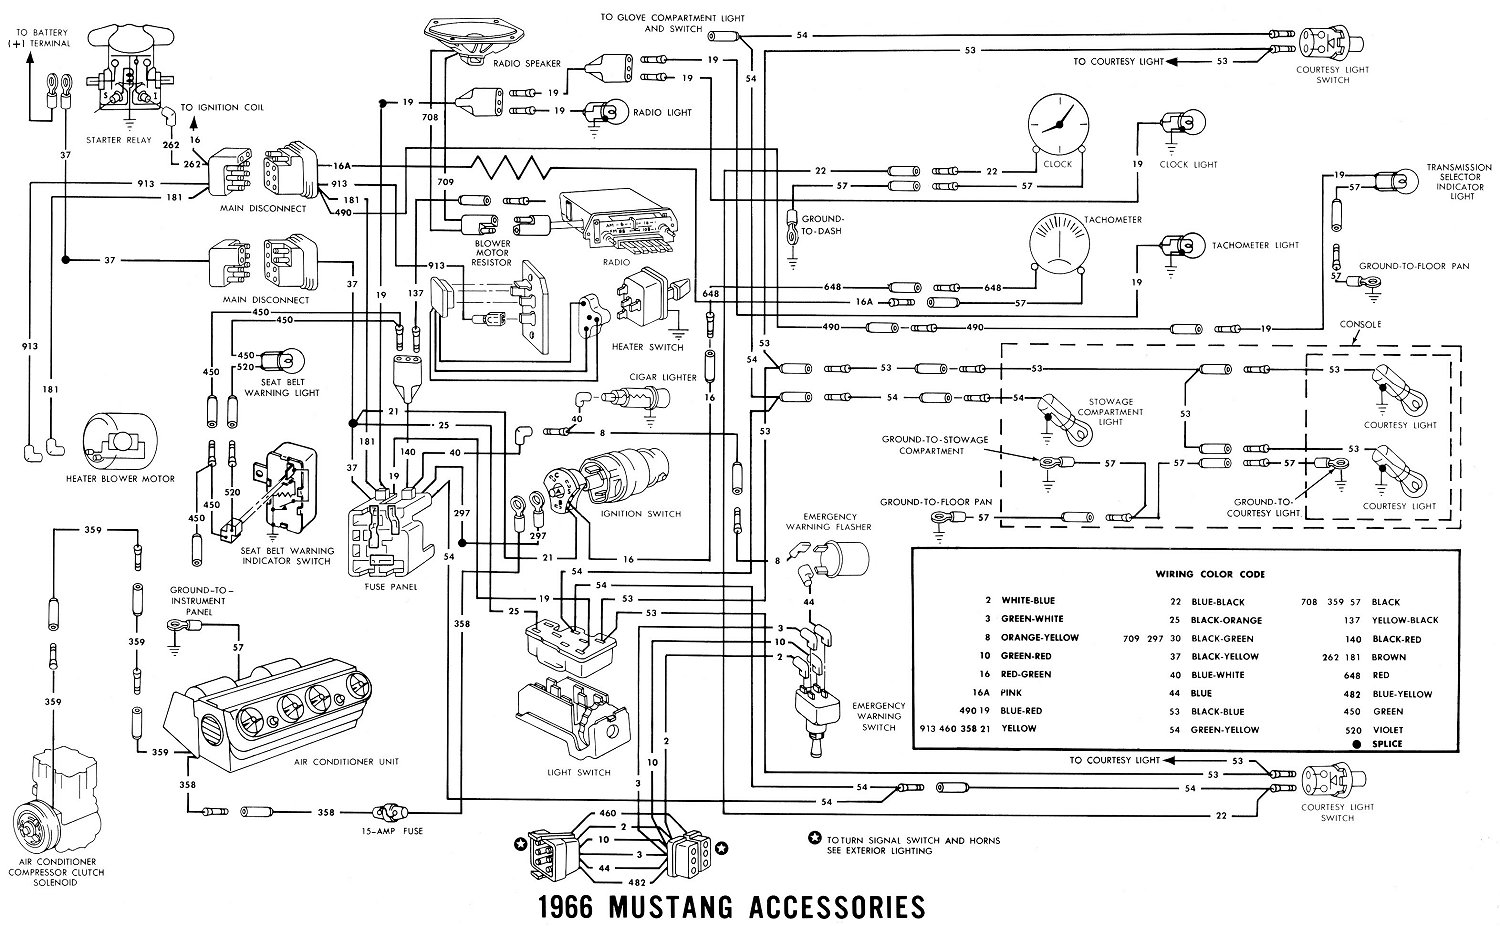 1966 Ford Mustang Accessories Wiring Diagram 1968 ford f100 wiring diagram 1965 ford f100 alternator wiring 1966 ford truck wiring diagram at crackthecode.co